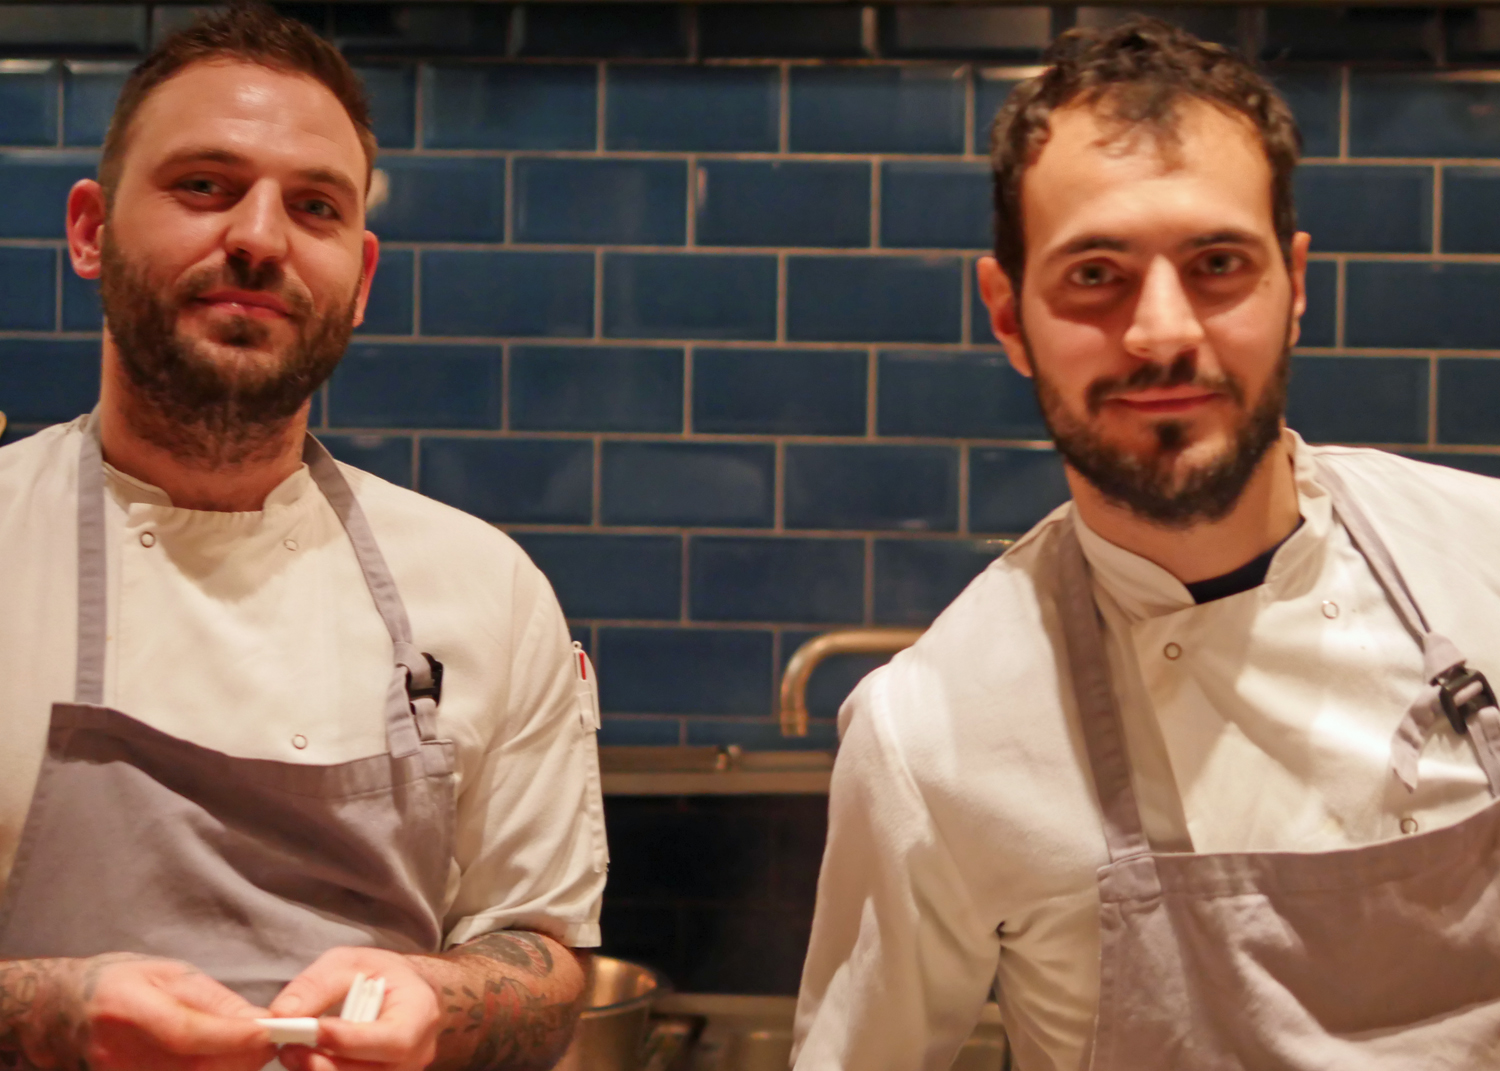 Chefs at the Clove Club